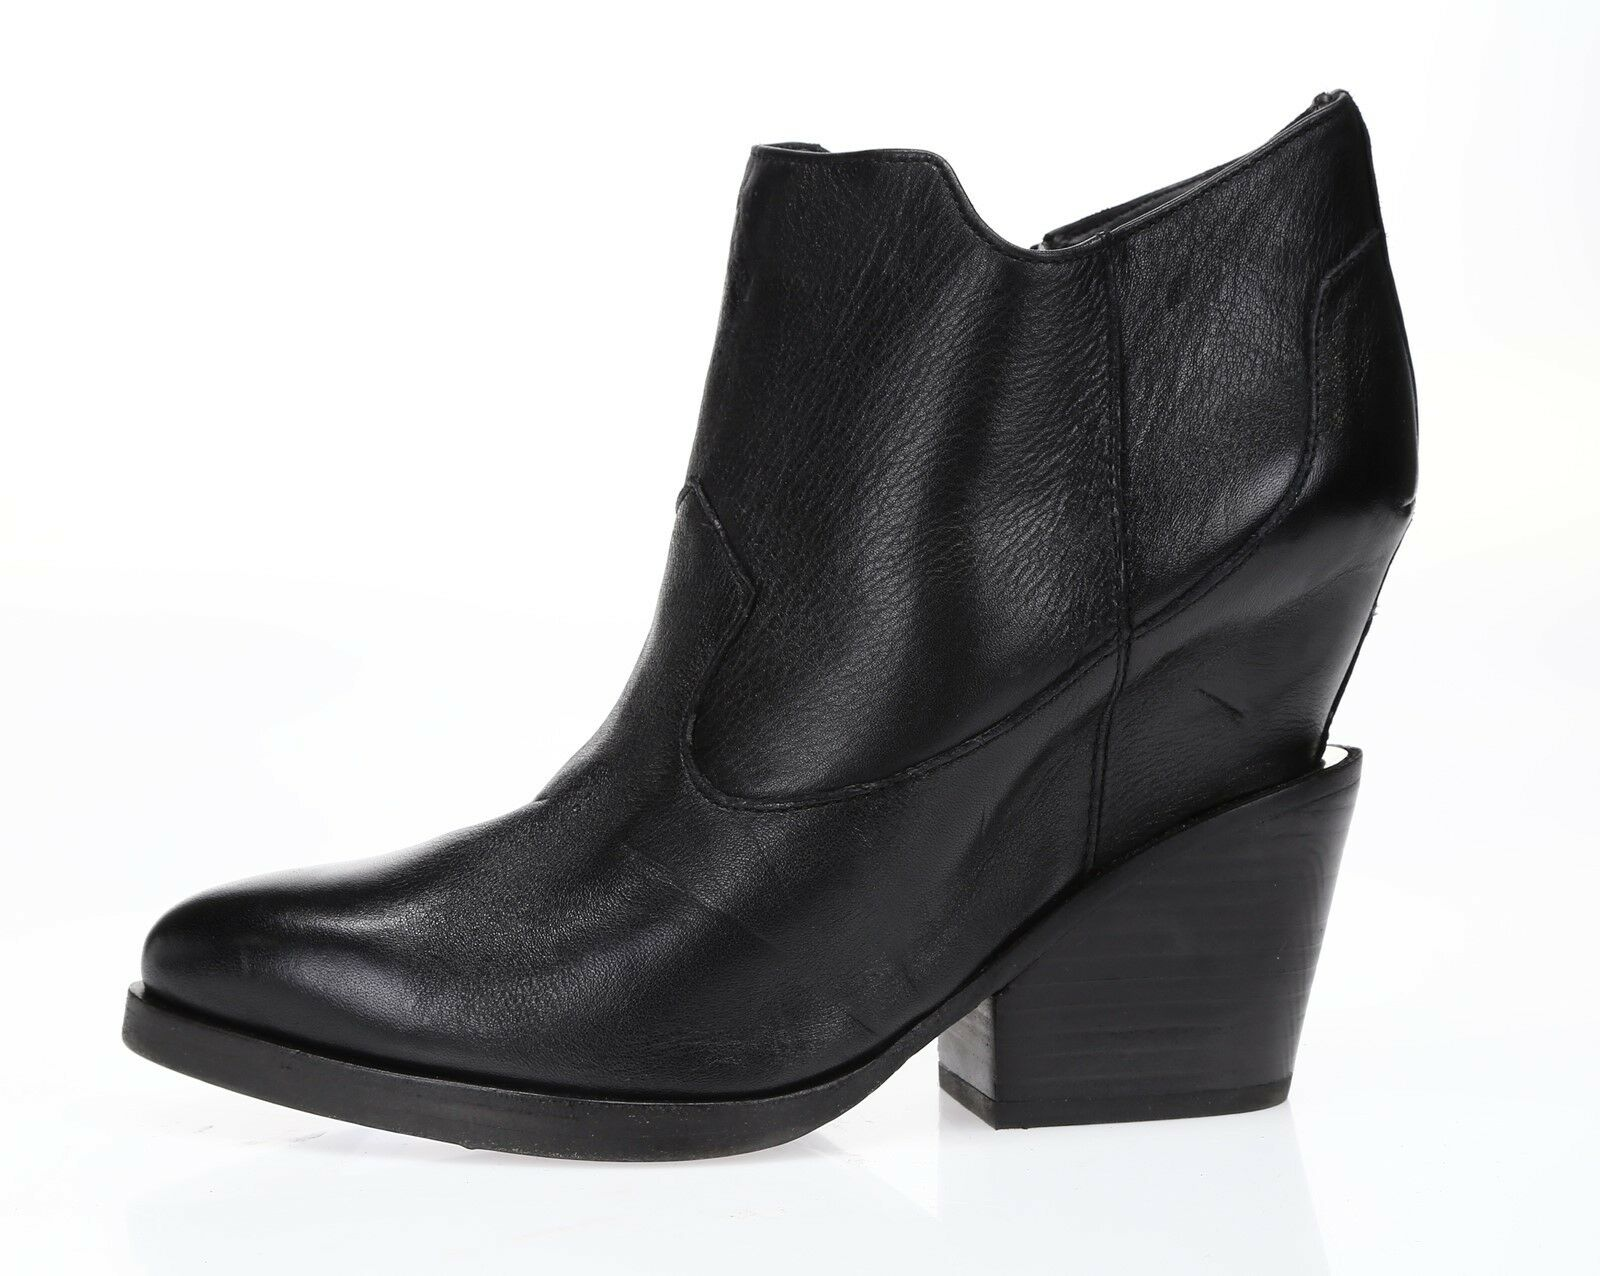 ASH Womens 'Lula' Black Leather Sz 39 Booties NEW  222357